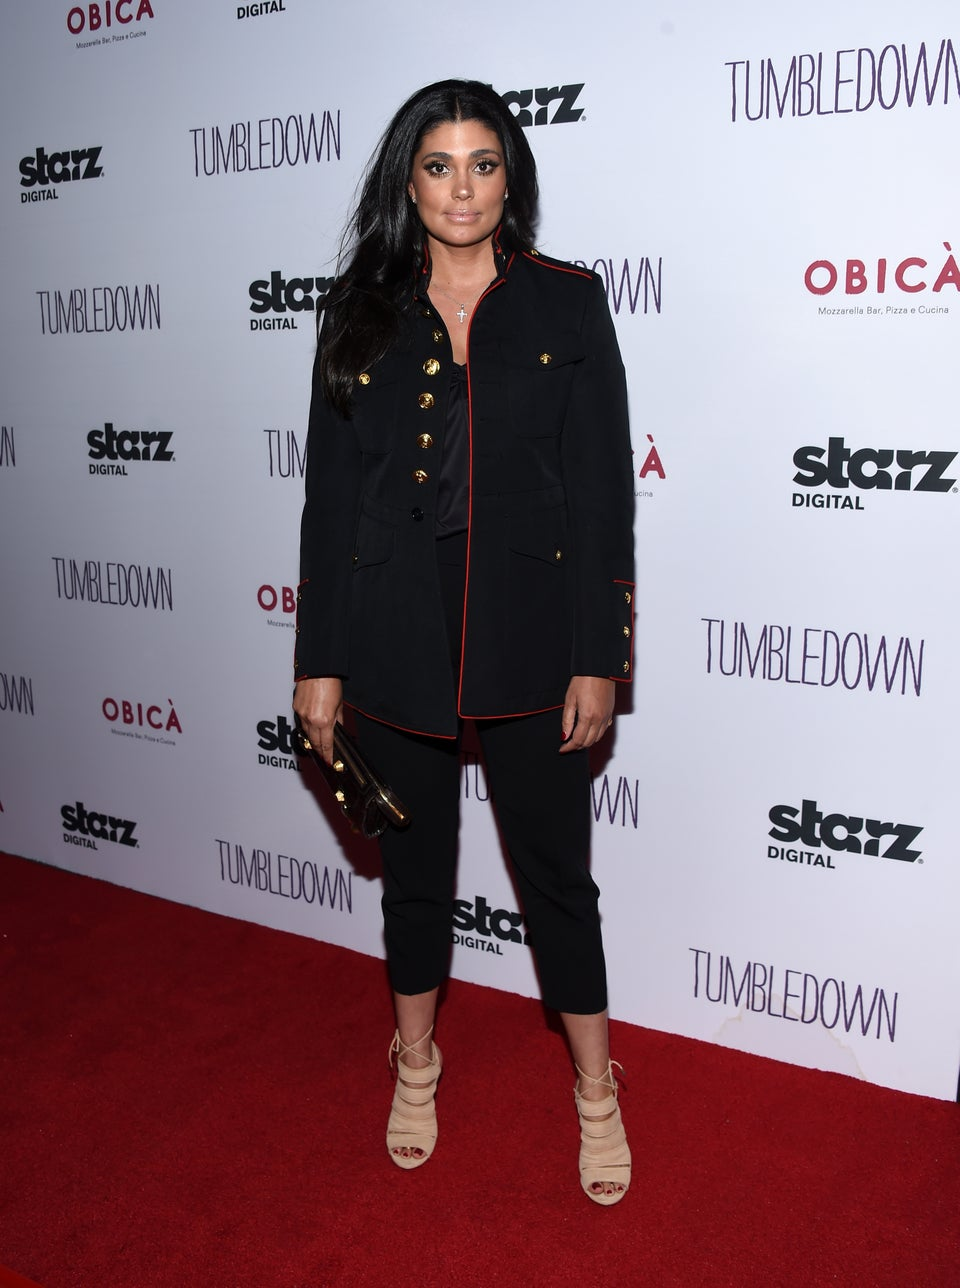 Rachel Roy Releases Statement, Isn't 'Becky with the Good Hair'